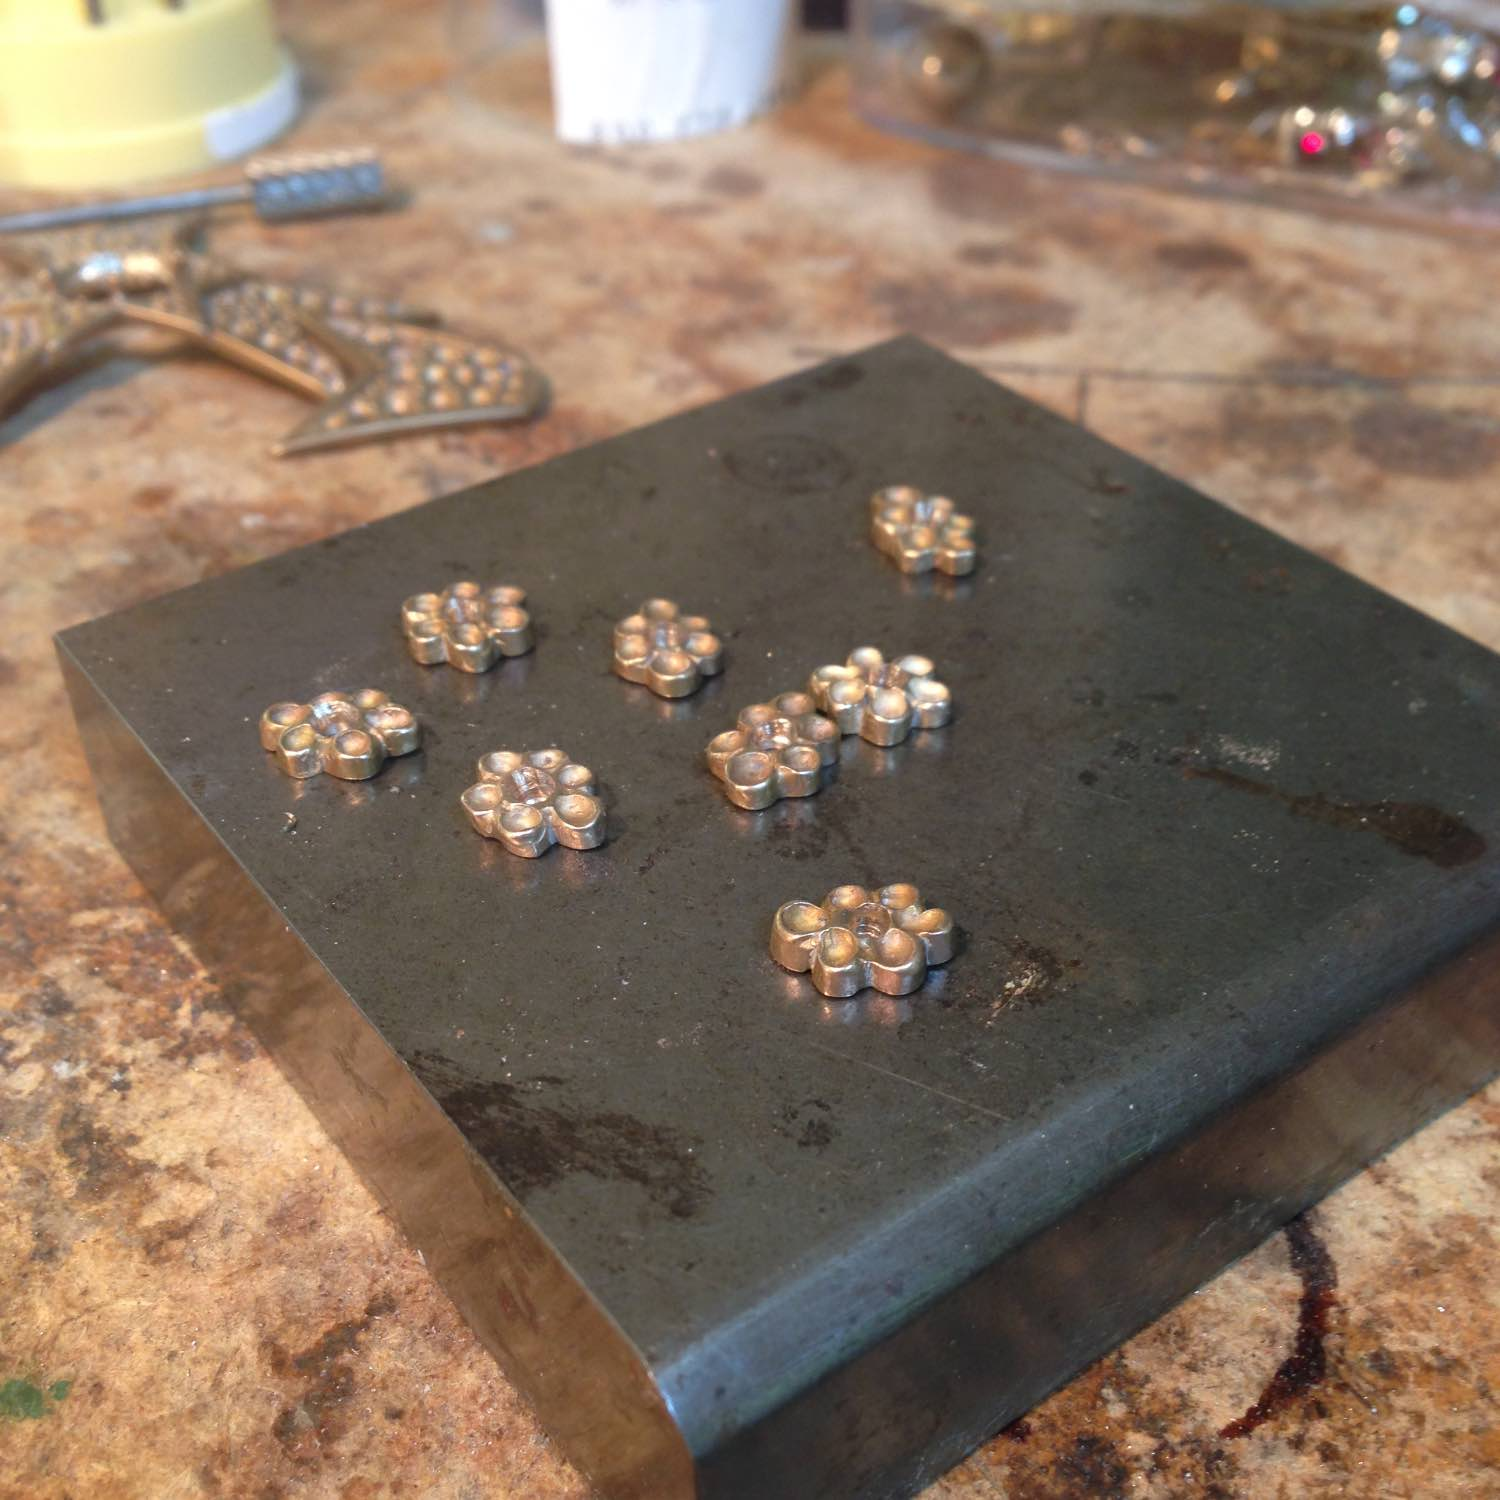 The small flowers will be set with garnets.